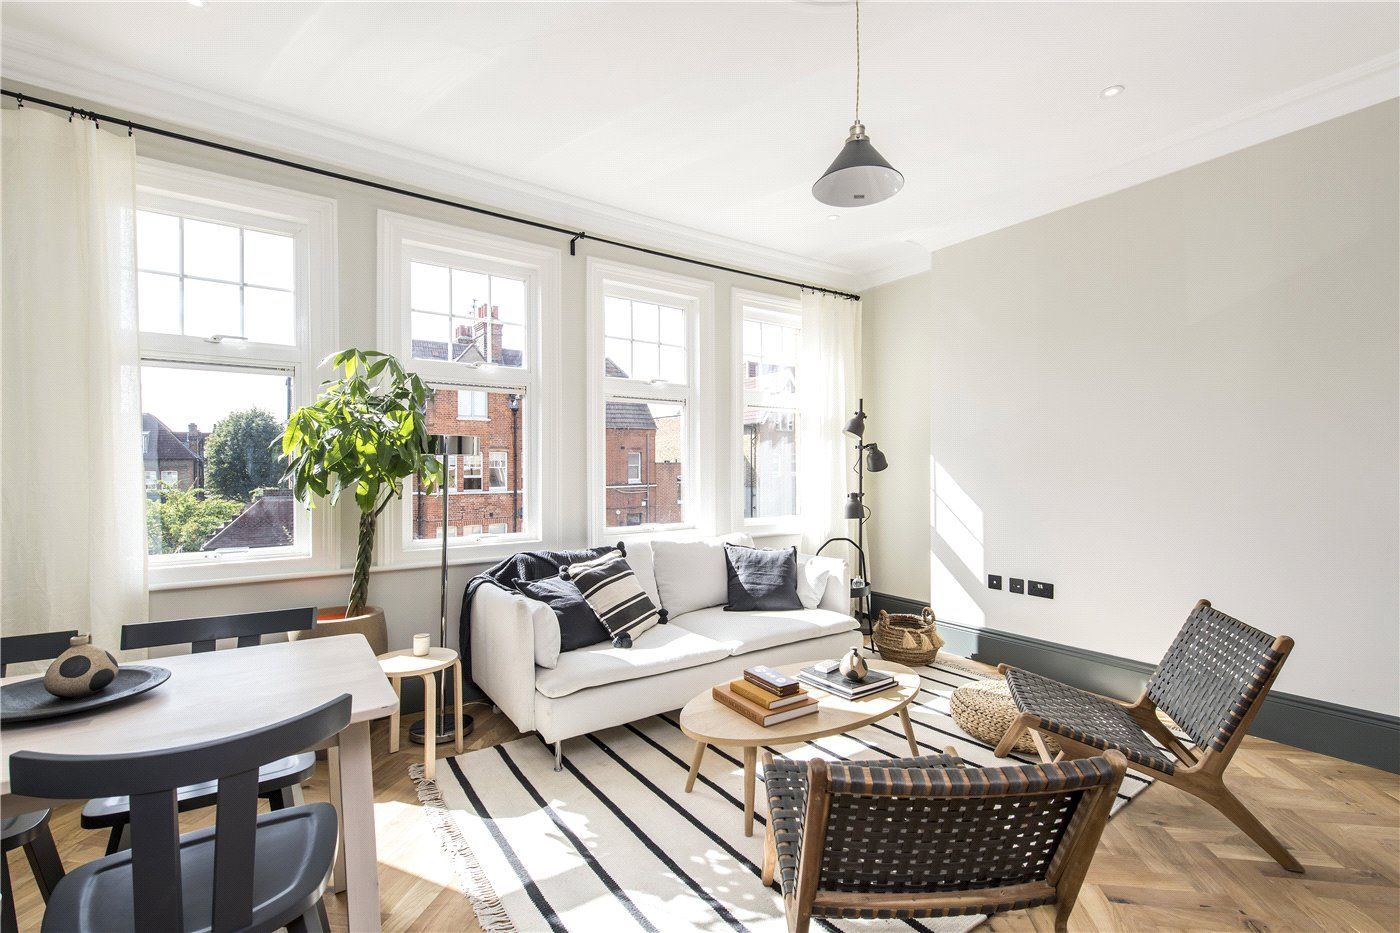 2 Bedroom Property For Sale In Thirlmere Road London Sw16 445 000 Property For Rent Property Home Decor